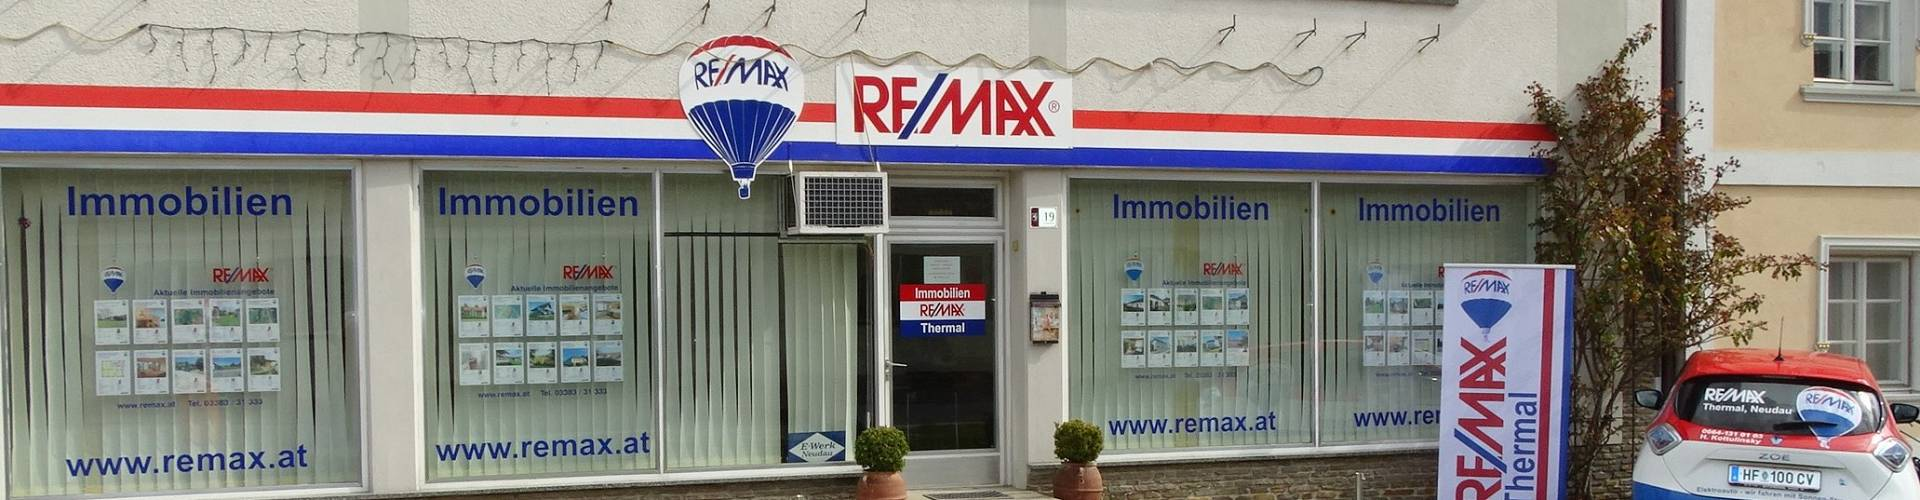 RE/MAX Thermal